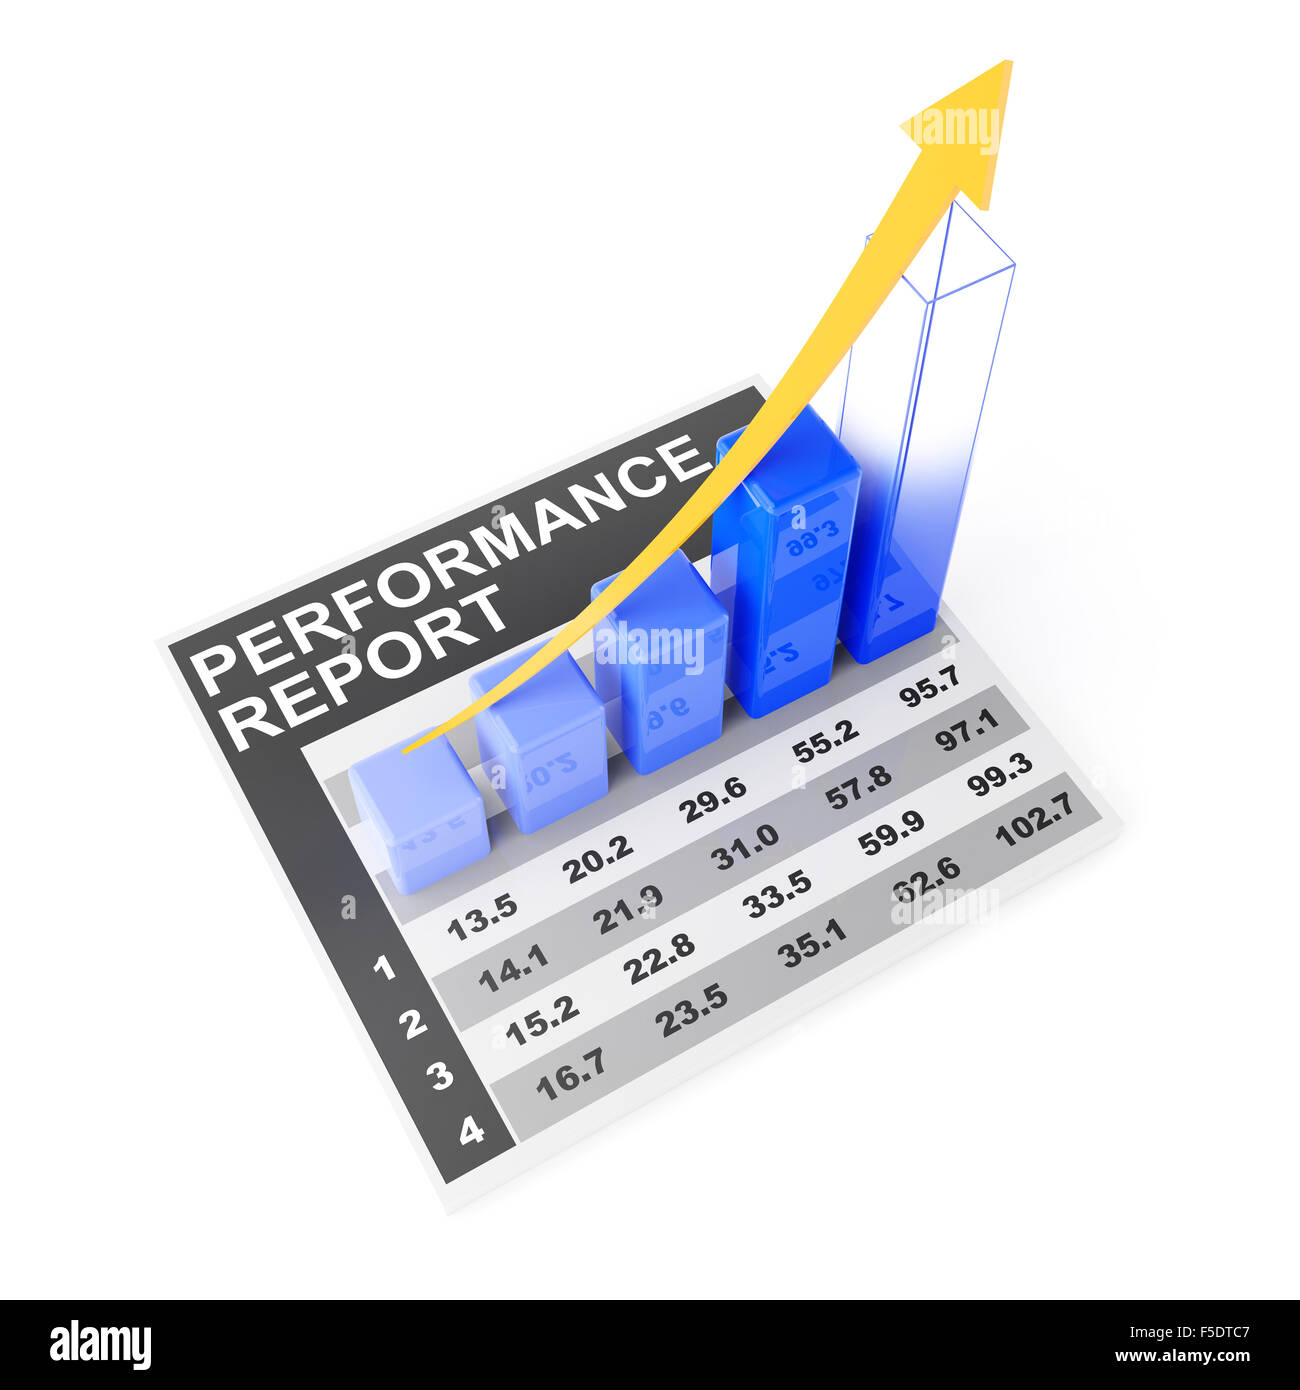 Business target performance - Stock Image